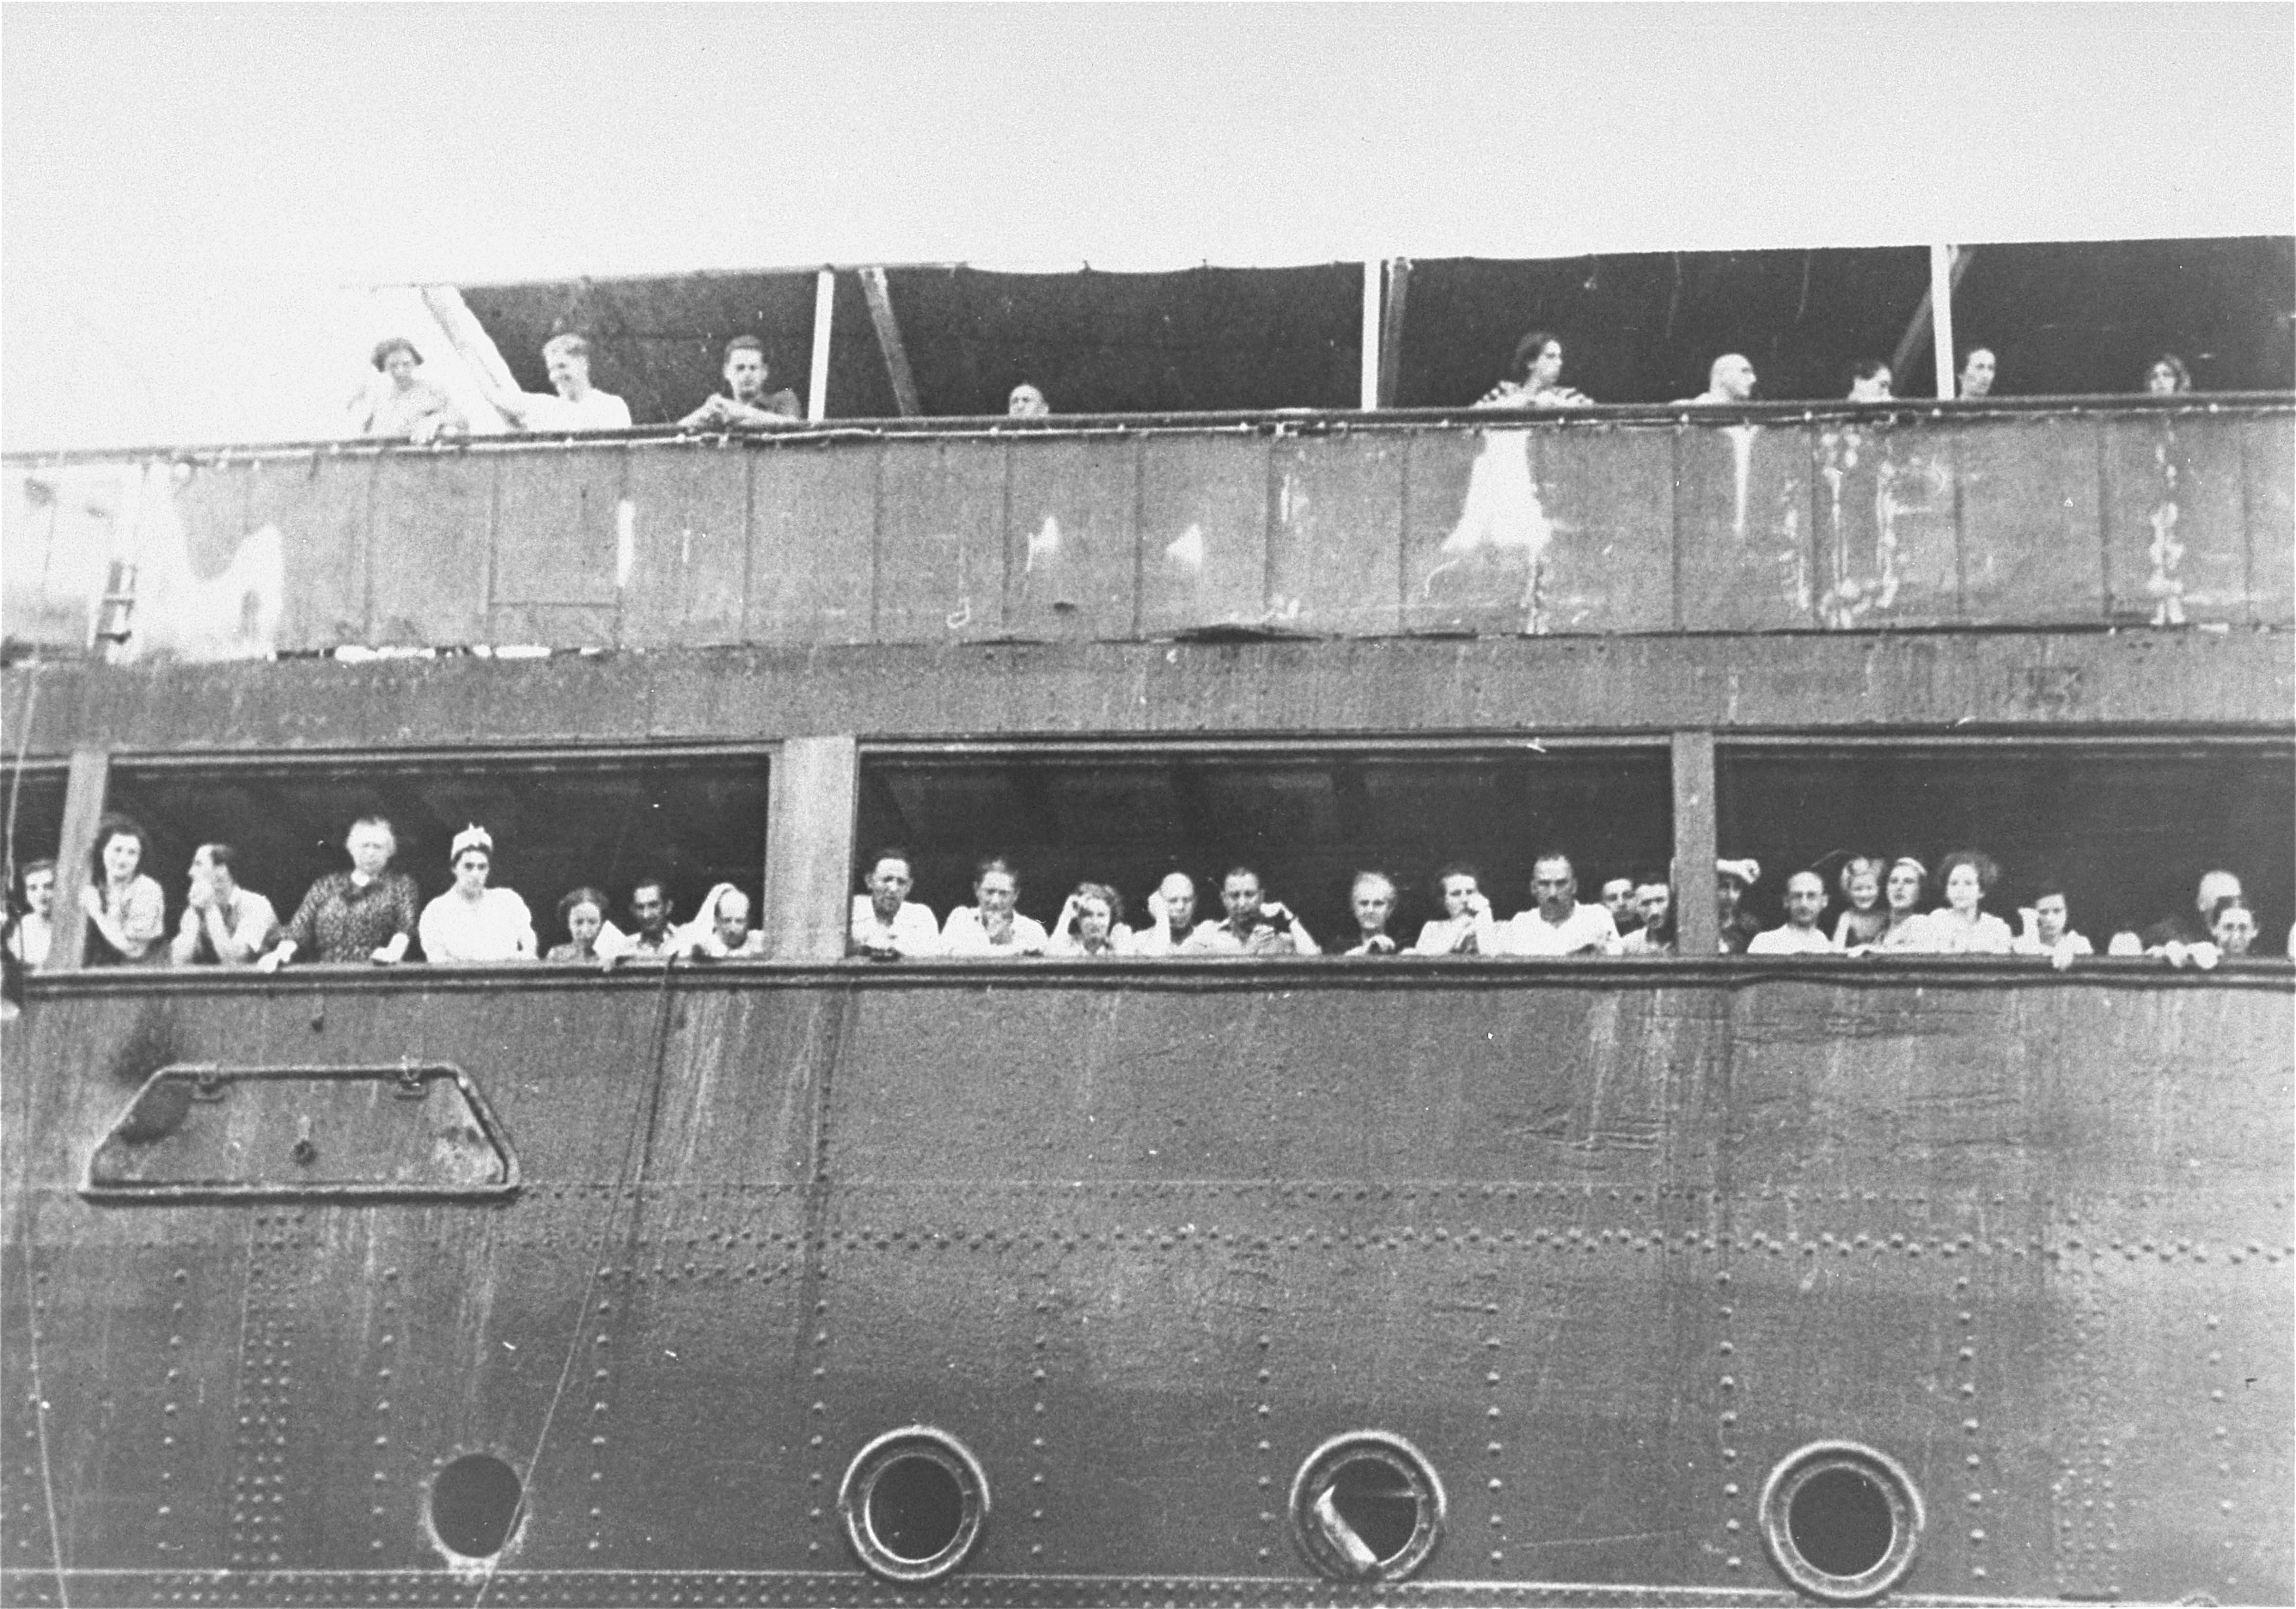 In 1939 the US turned away a Jewish refugee ship. This Twitter account commemorates the victims.